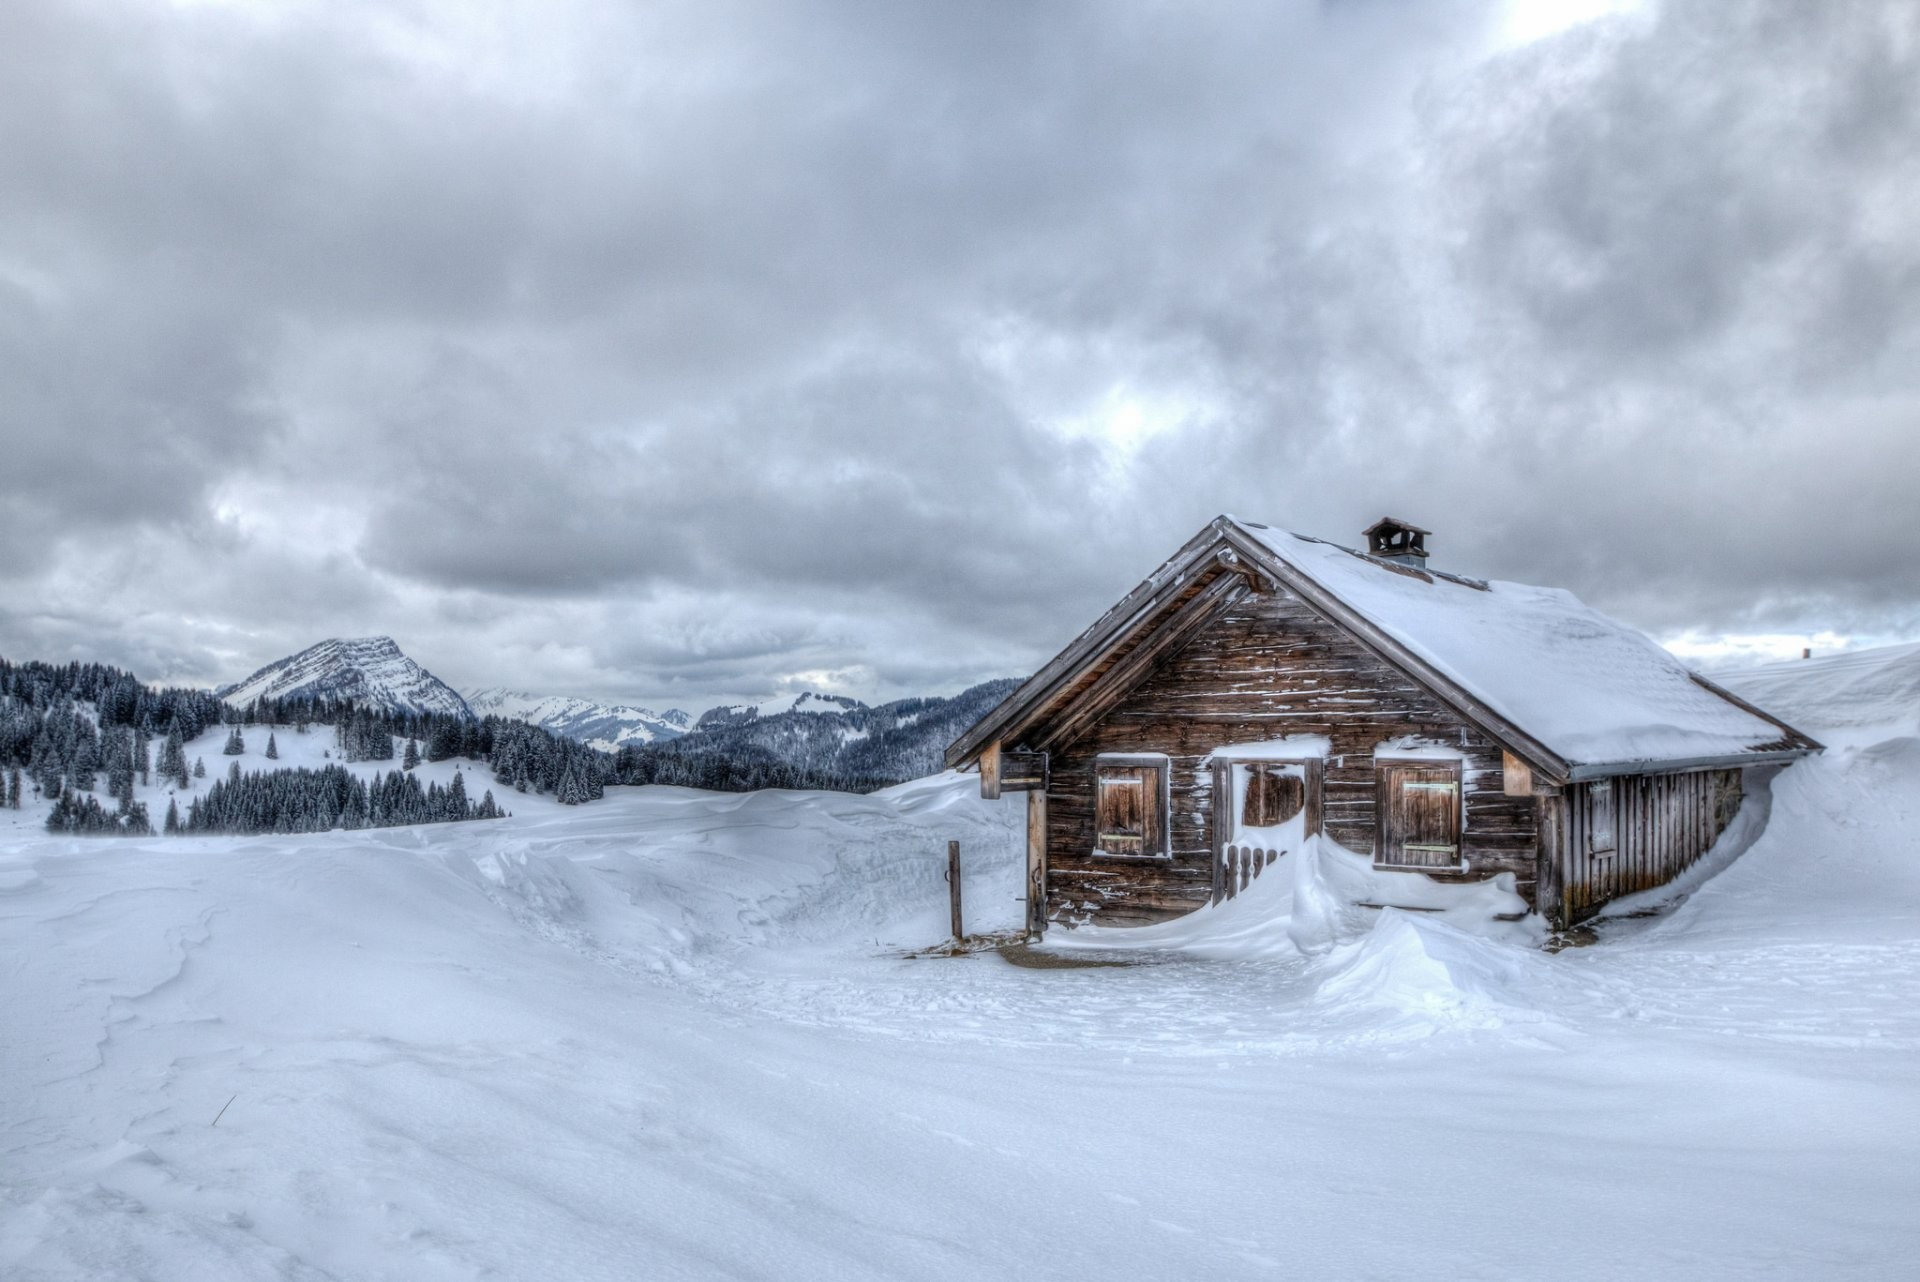 winter snow chalet cool mountain house winter snow hut cold mountains house  background wallpaper widescreen full